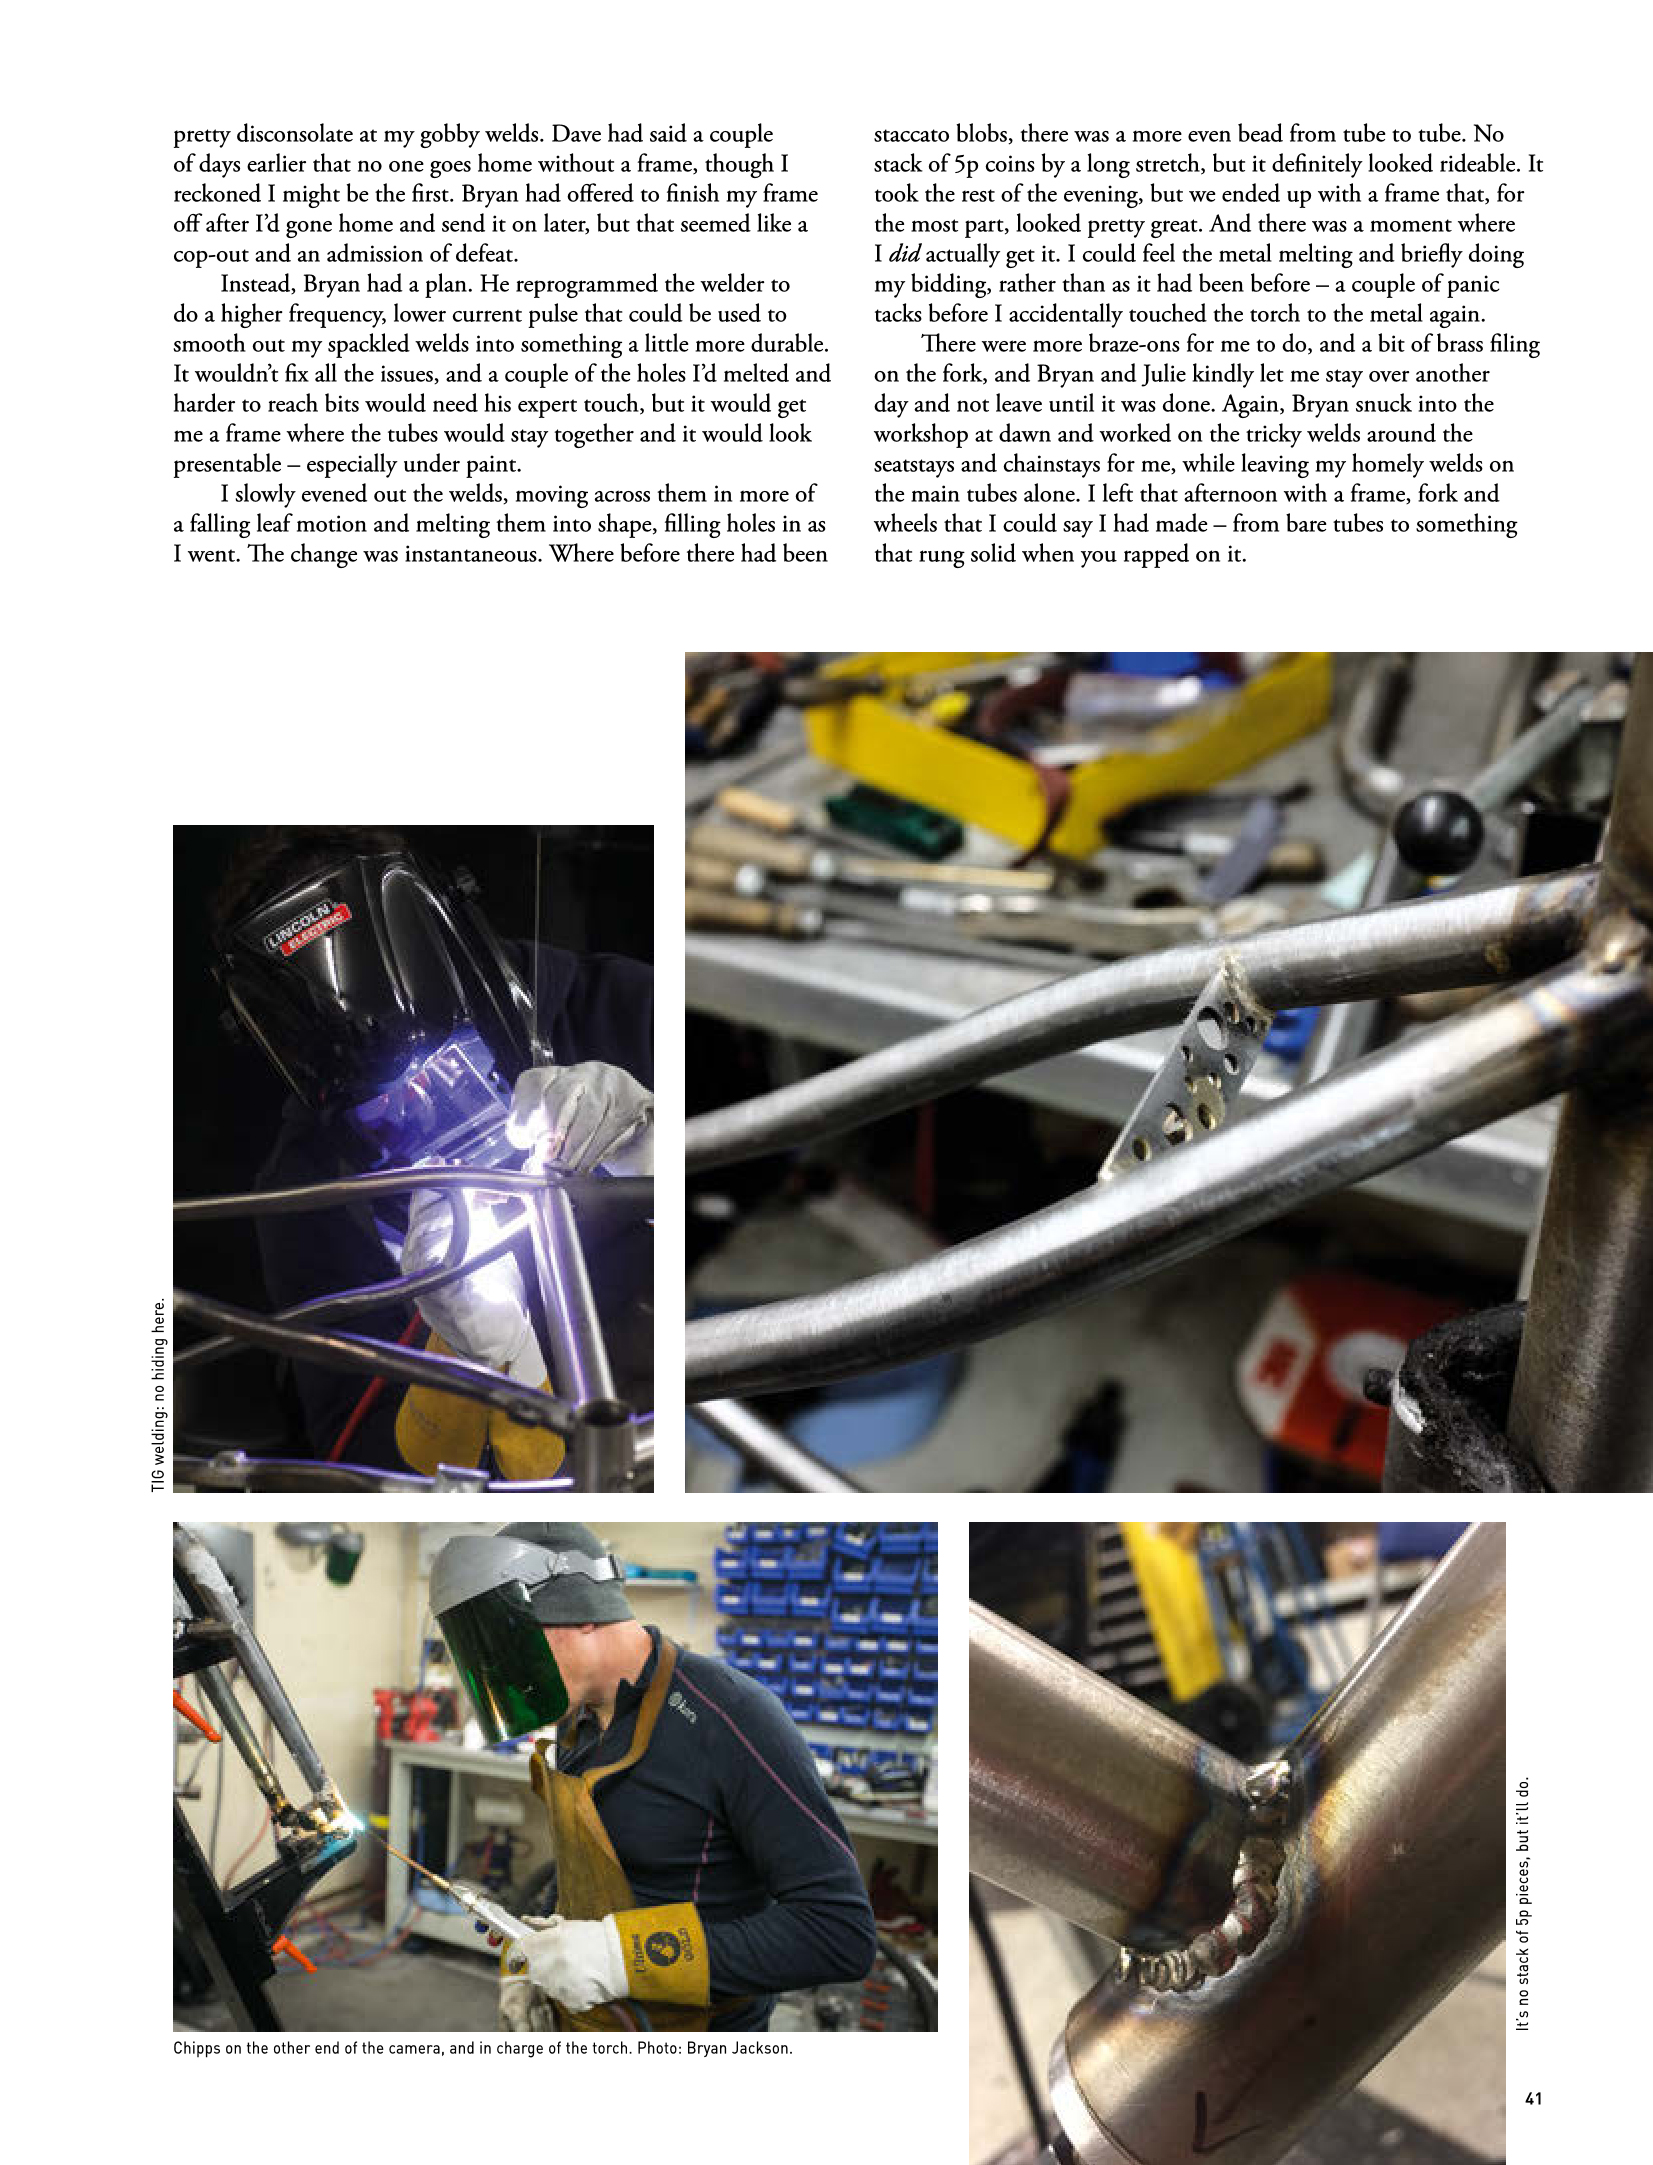 Issue111_framebuilding article.pdf_extract_Page_10